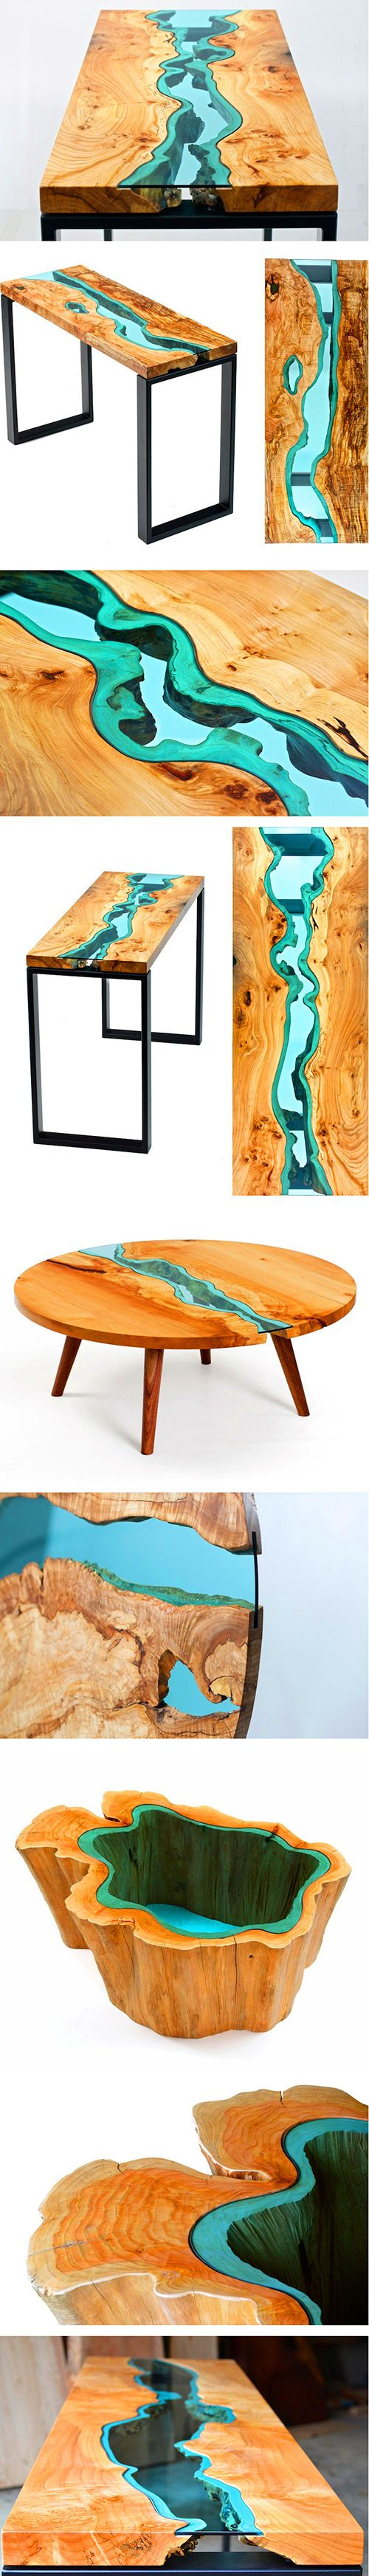 "Greg Klassen is a furniture maker in the Pacific Northwest who finds inspiration in its landscape and translates that into his work. His River Collection is a series of intricately designed and handcrafted tables that feature embedded, blueish-green glass ""rivers"" running throughout each piece. The naturally uneven edges of the wood and their vivid grains provide the perfect ""shore"" to mimic bodies of water."